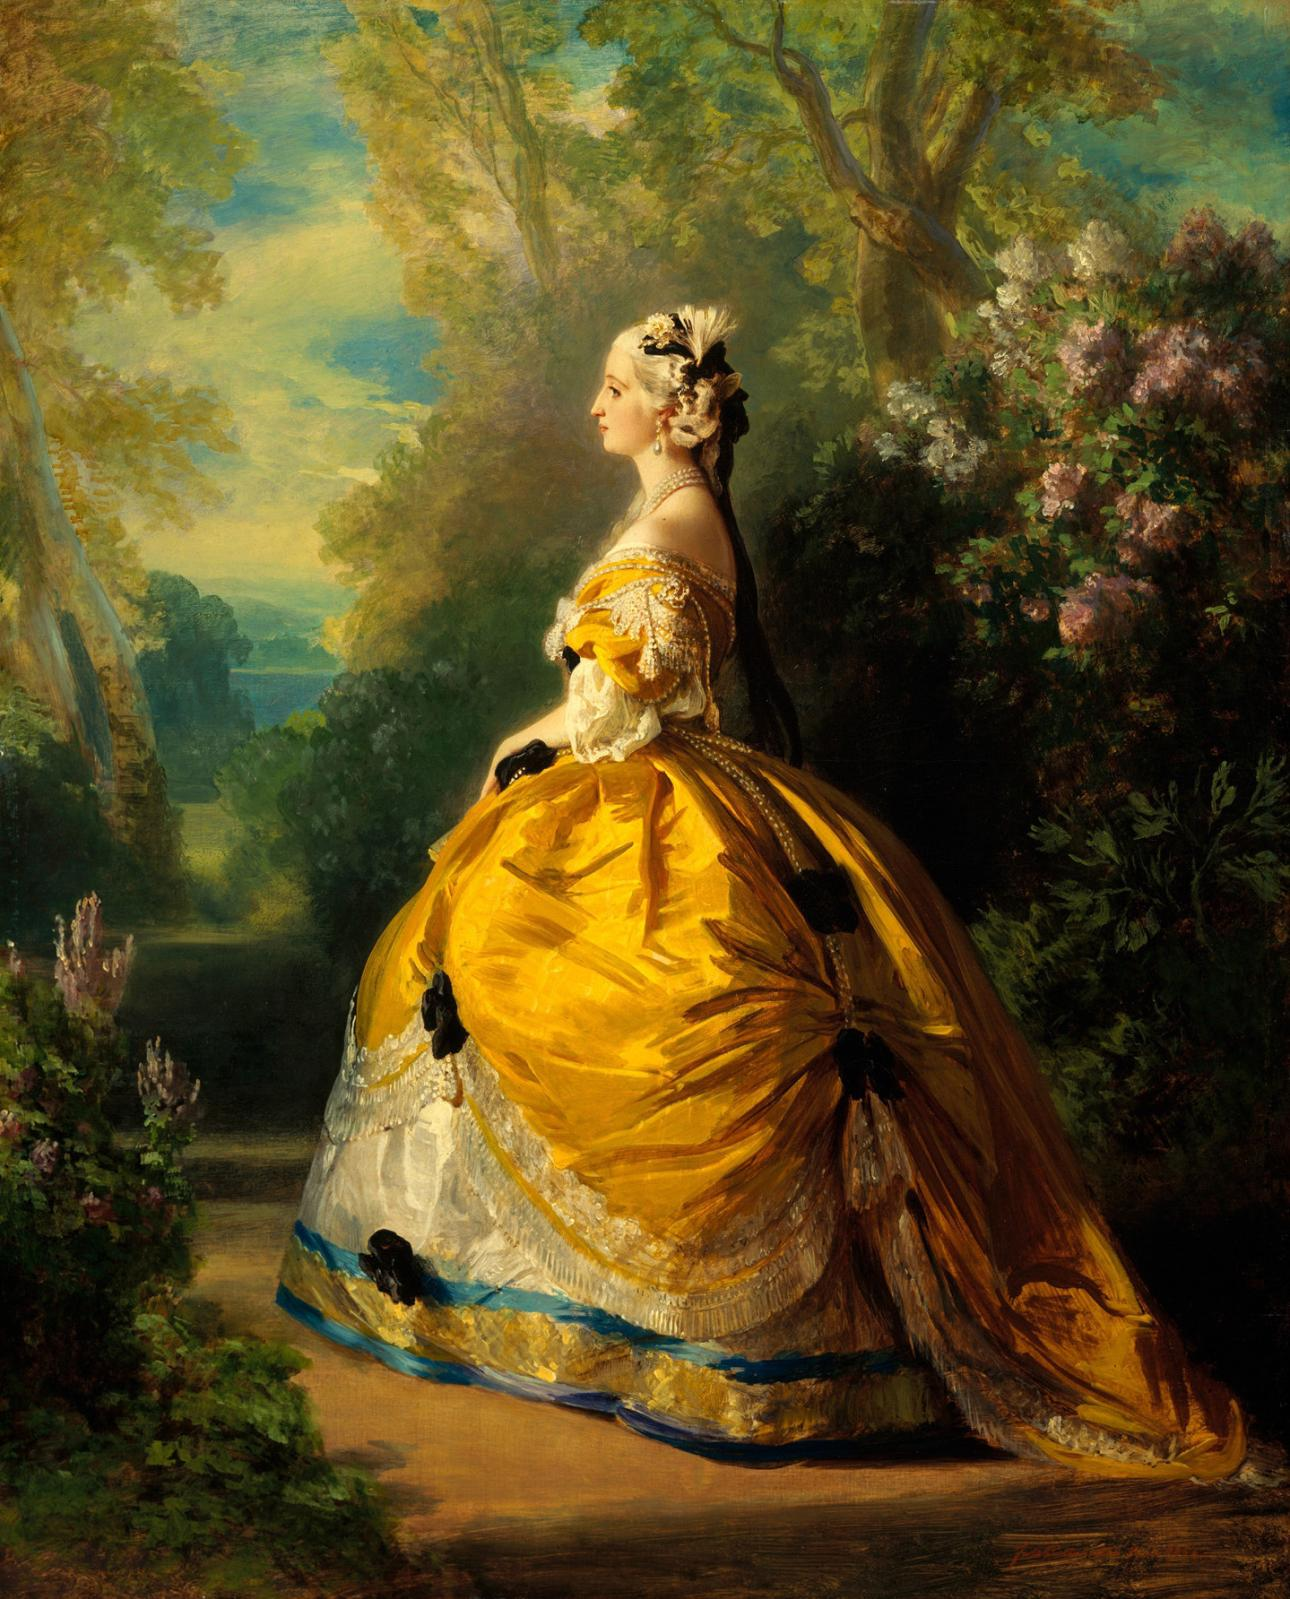 Franz Xaver Winterhalter (1805-1871), Eugenie in XVIII costume, 1854, oil on canvas. New York, Metropolitan Museum, 92.7 x 73.7 cm (36.49